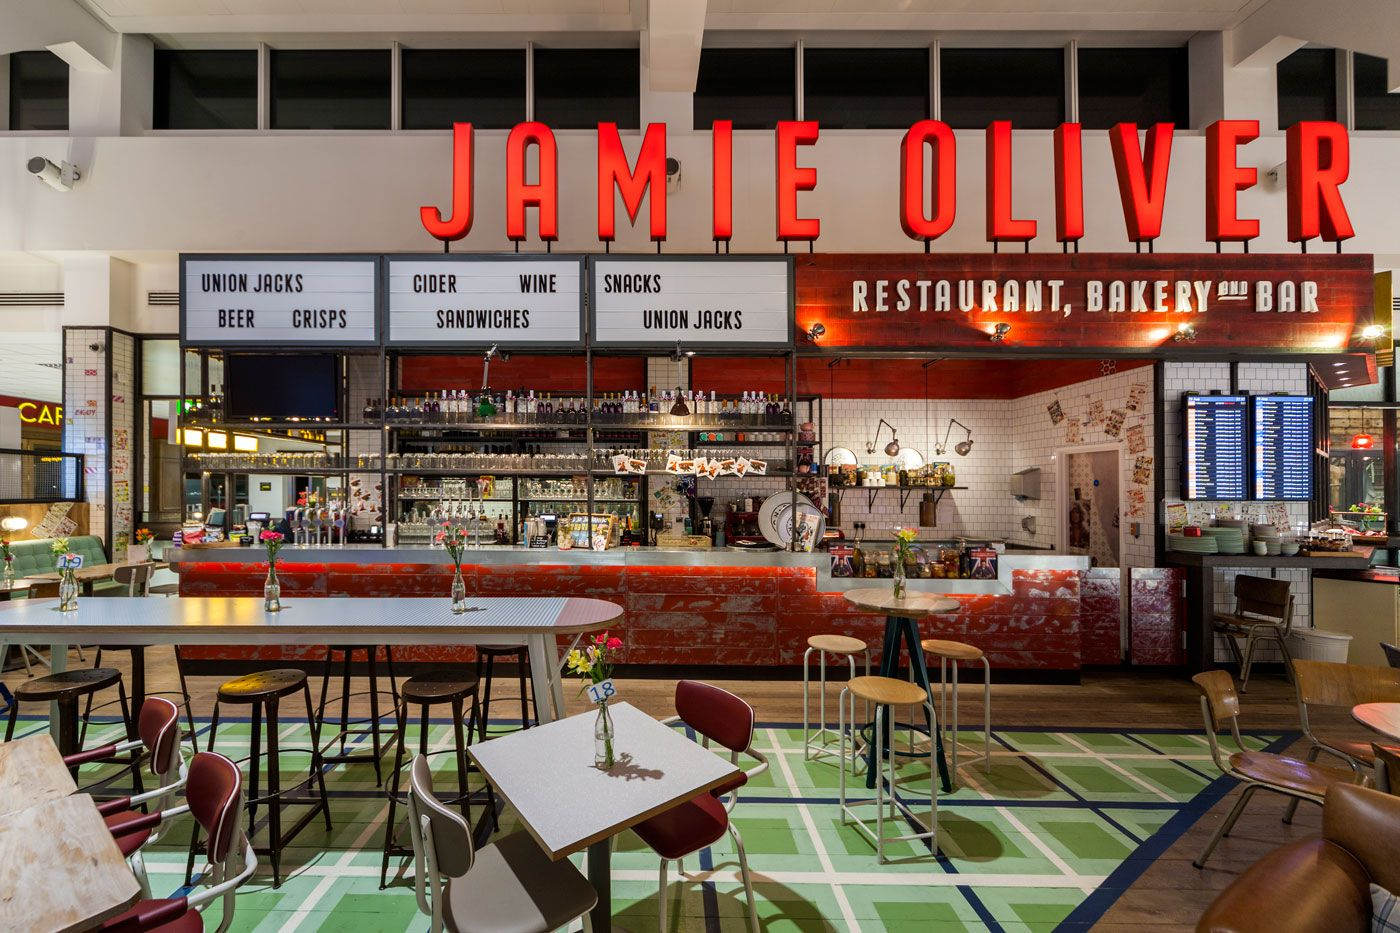 Image 6 Of 30 From Gallery 2013 Restaurant Bar Design Award Winners Jamies Italian Gatwick Airport Blacksheep